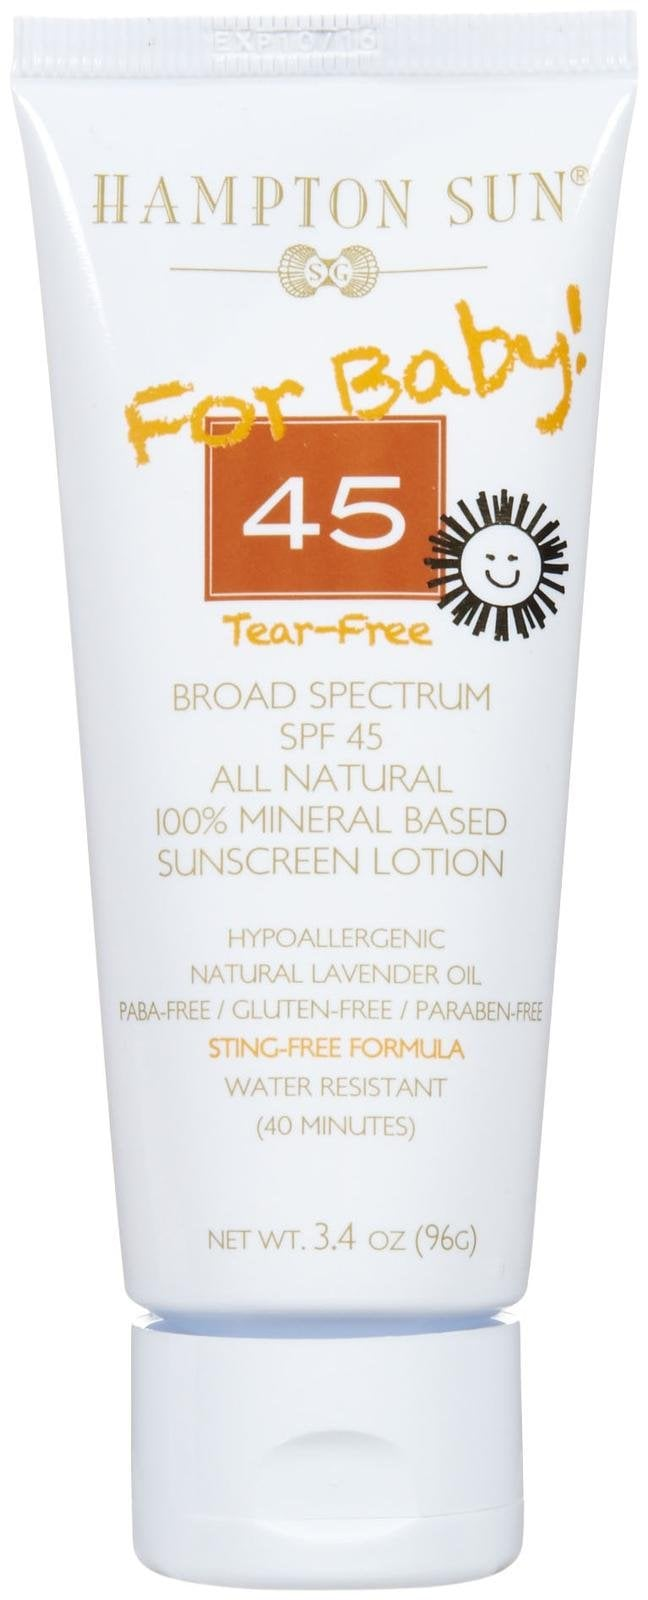 Sephora (and Online) Find: Hampton Sun Sunscreen Lotion For Baby, SPF 45